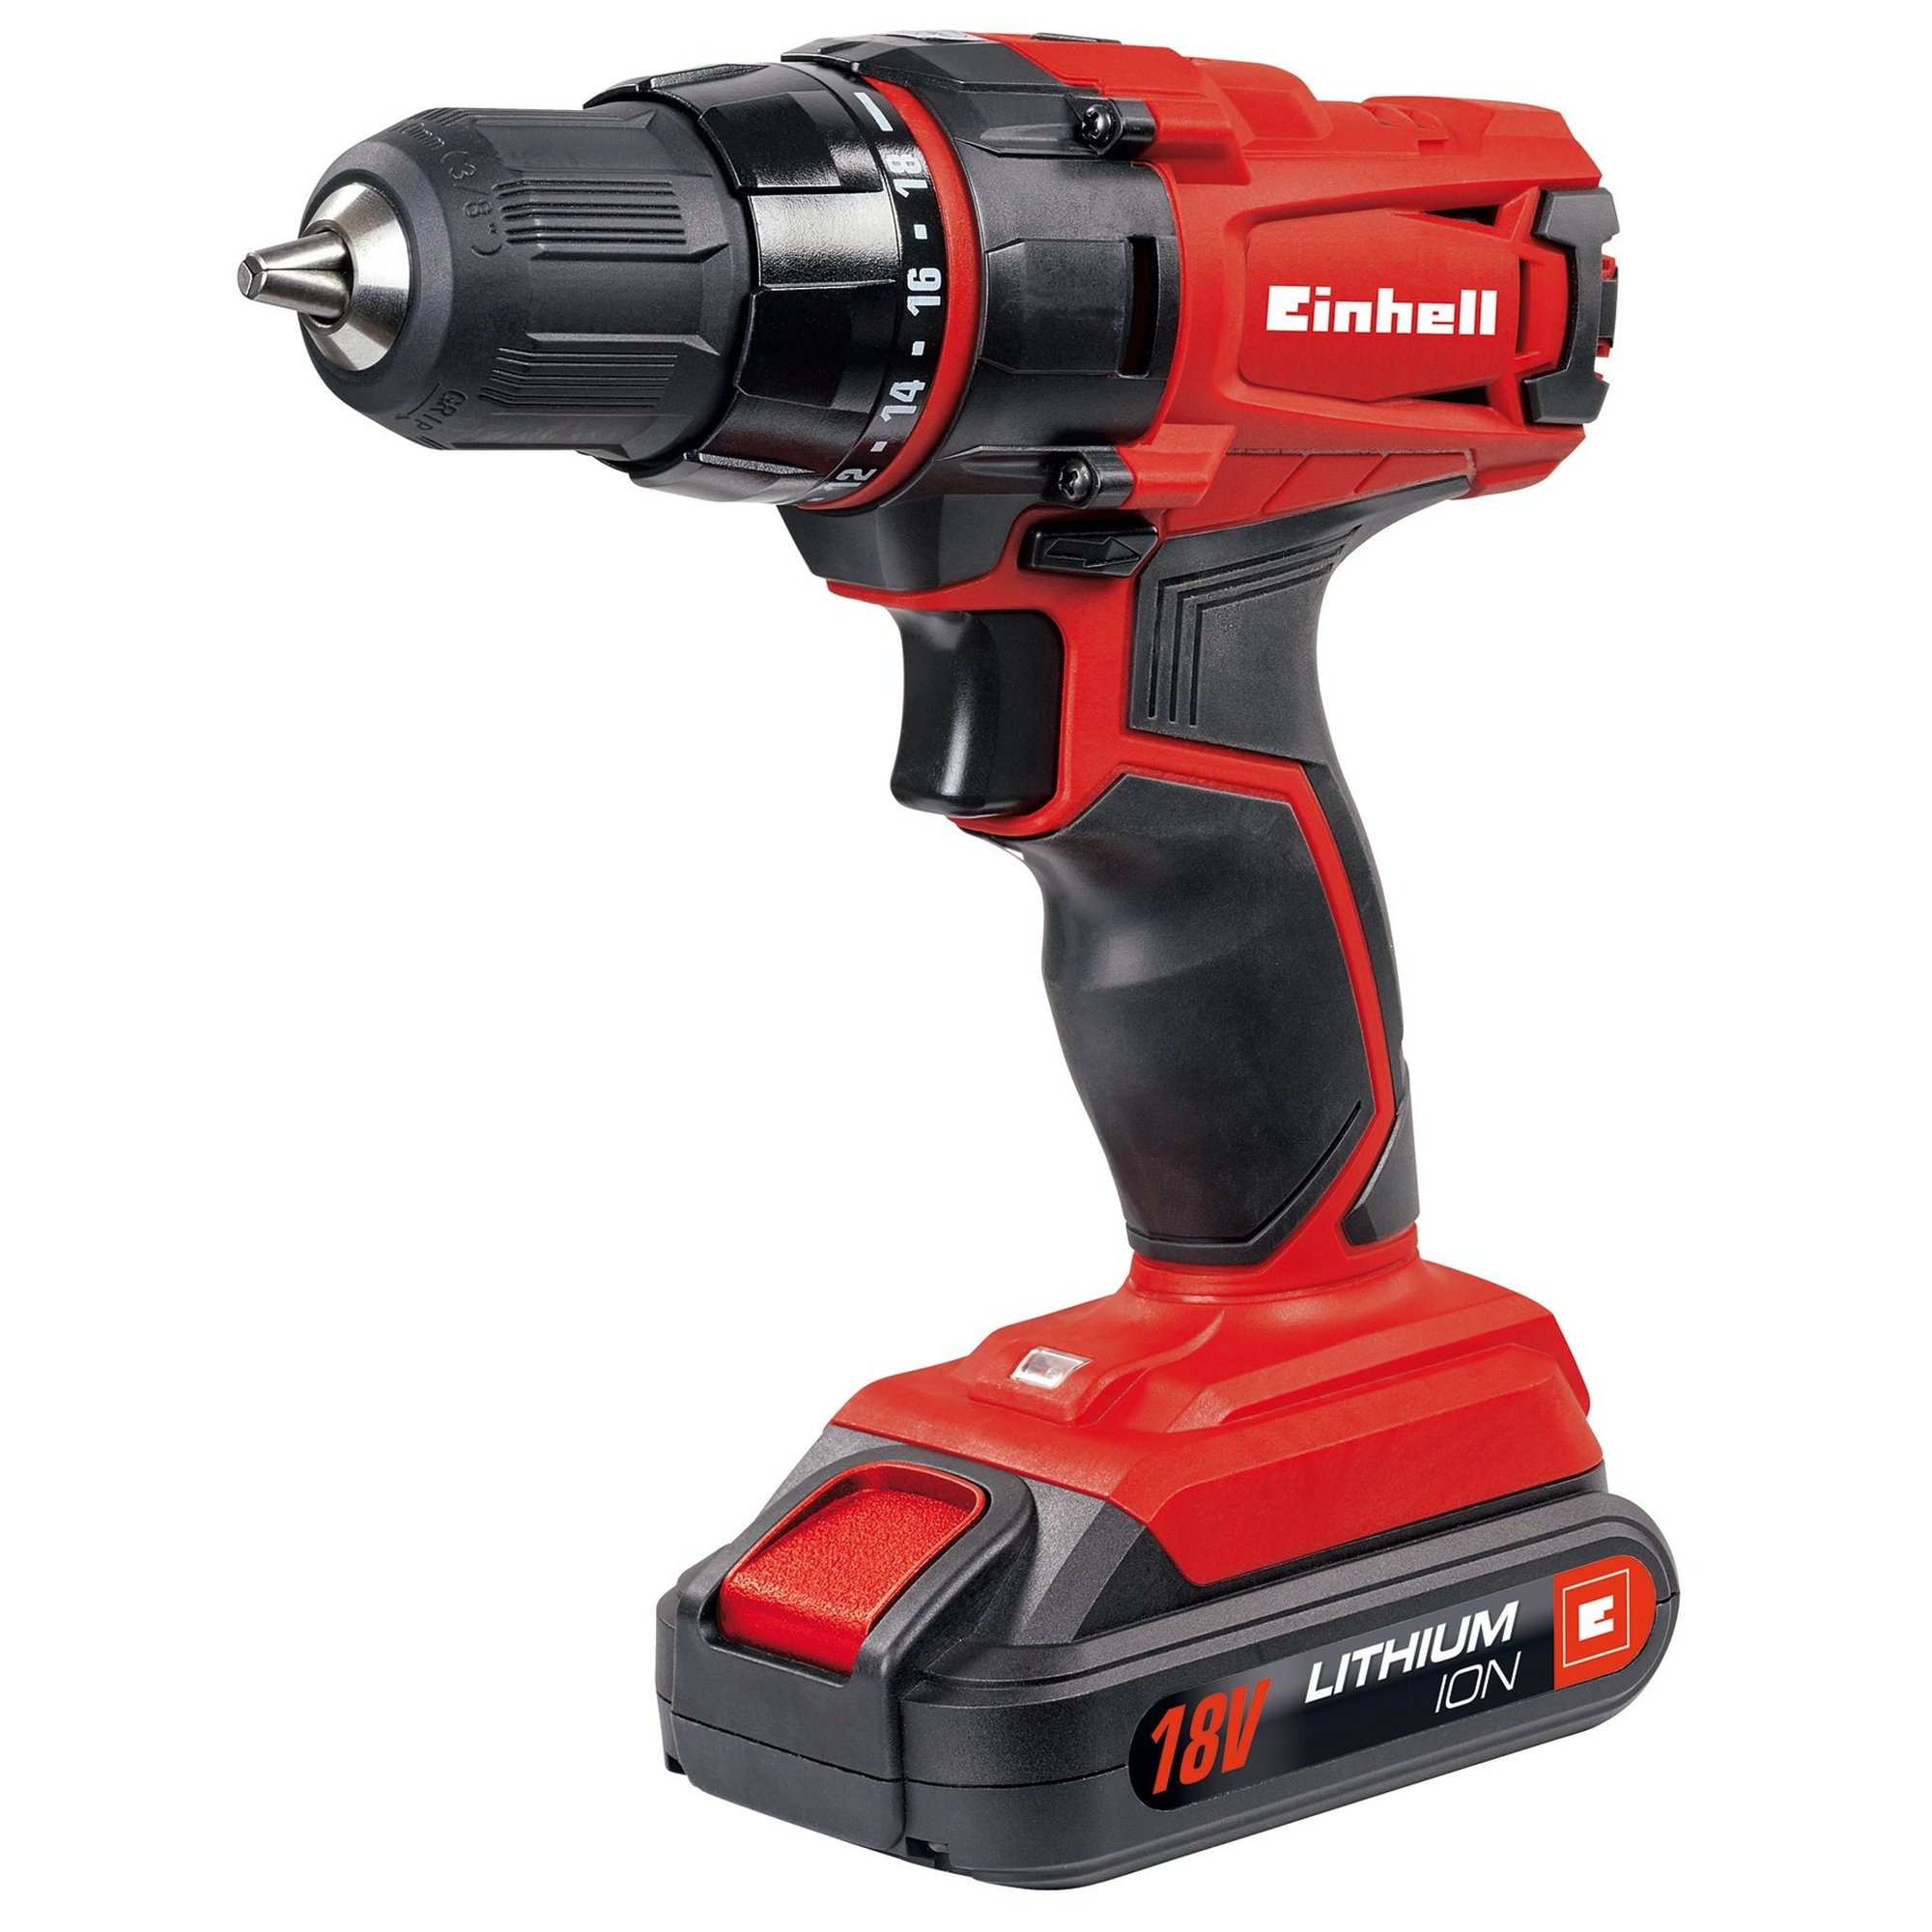 Image of Einhell Cordless Lithium ION Drill Driver